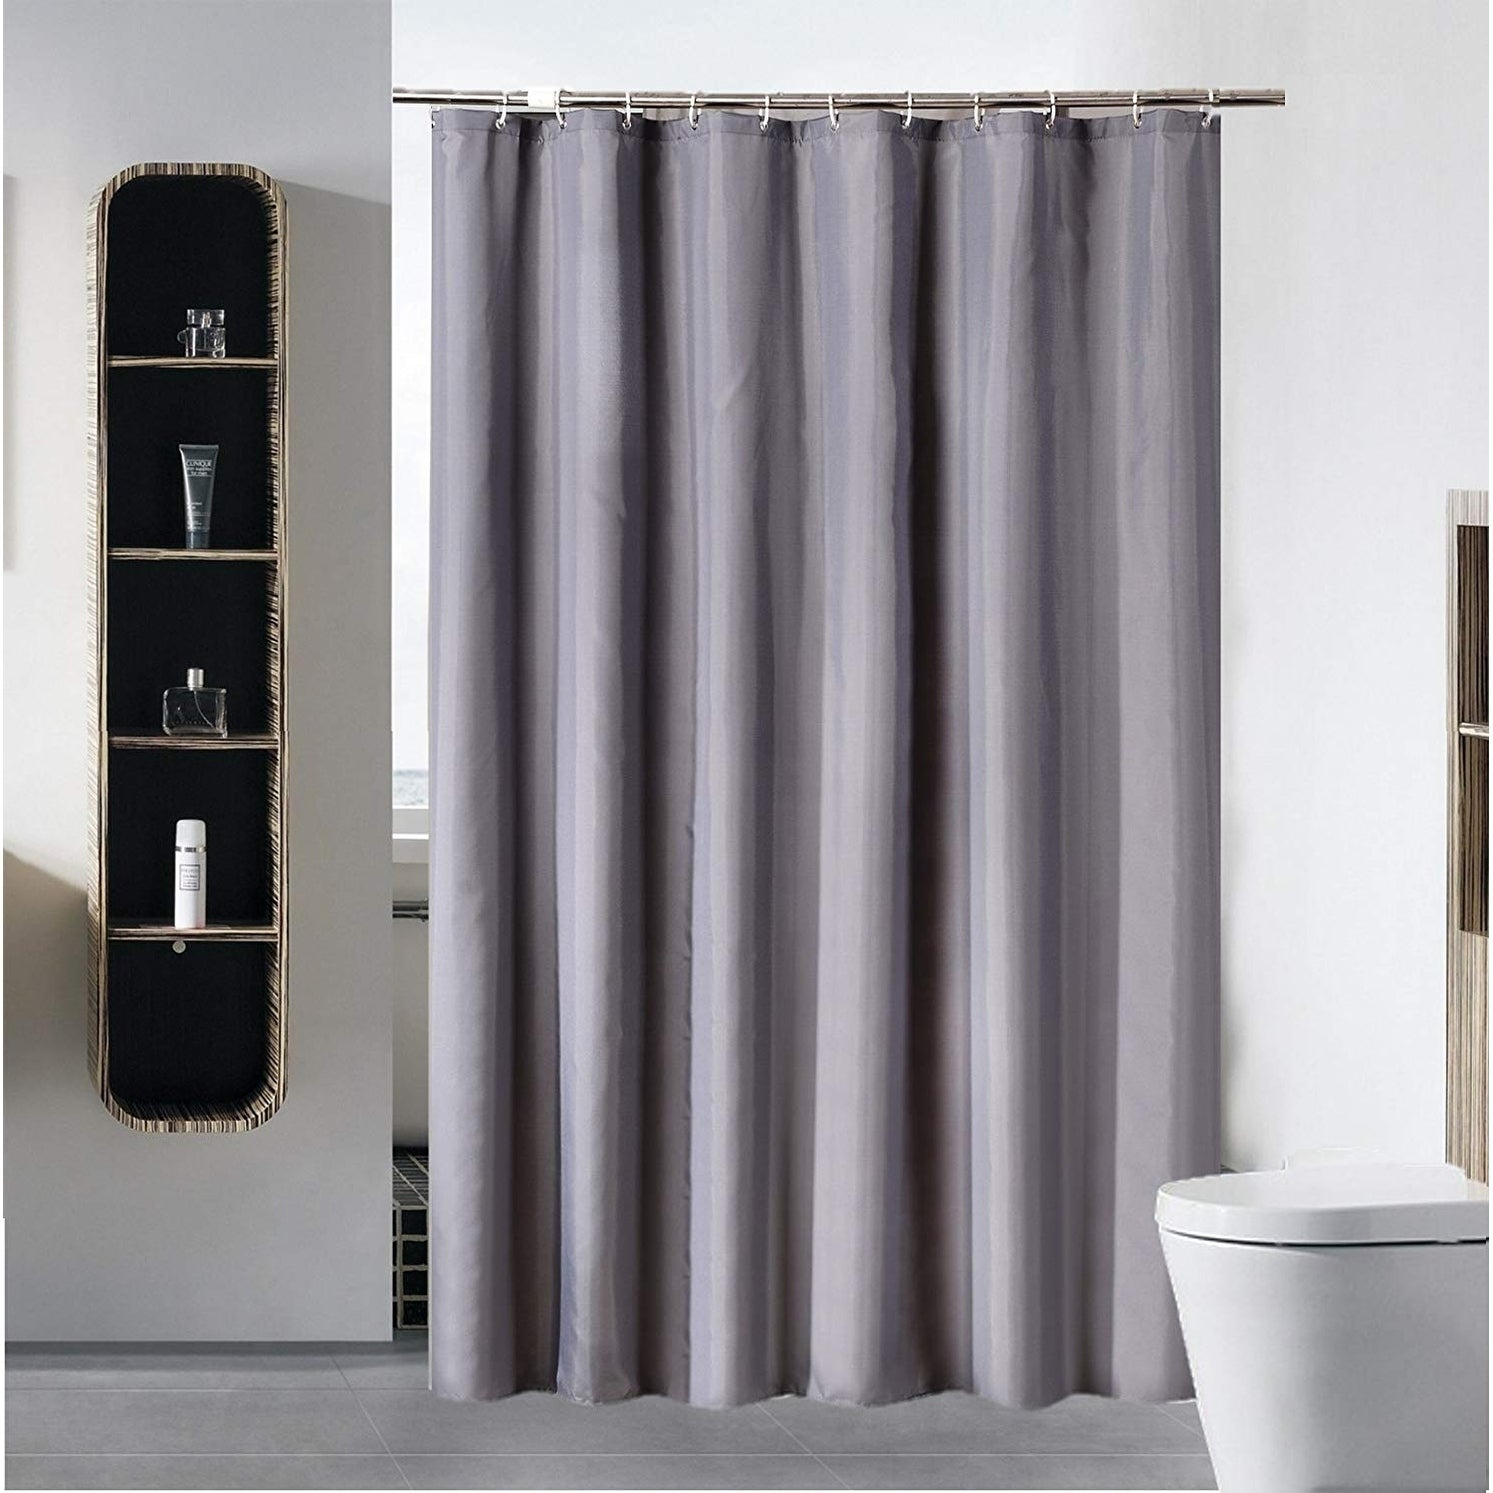 Shop Shower Curtain Liner Water Repellent Fabric Pure Gray